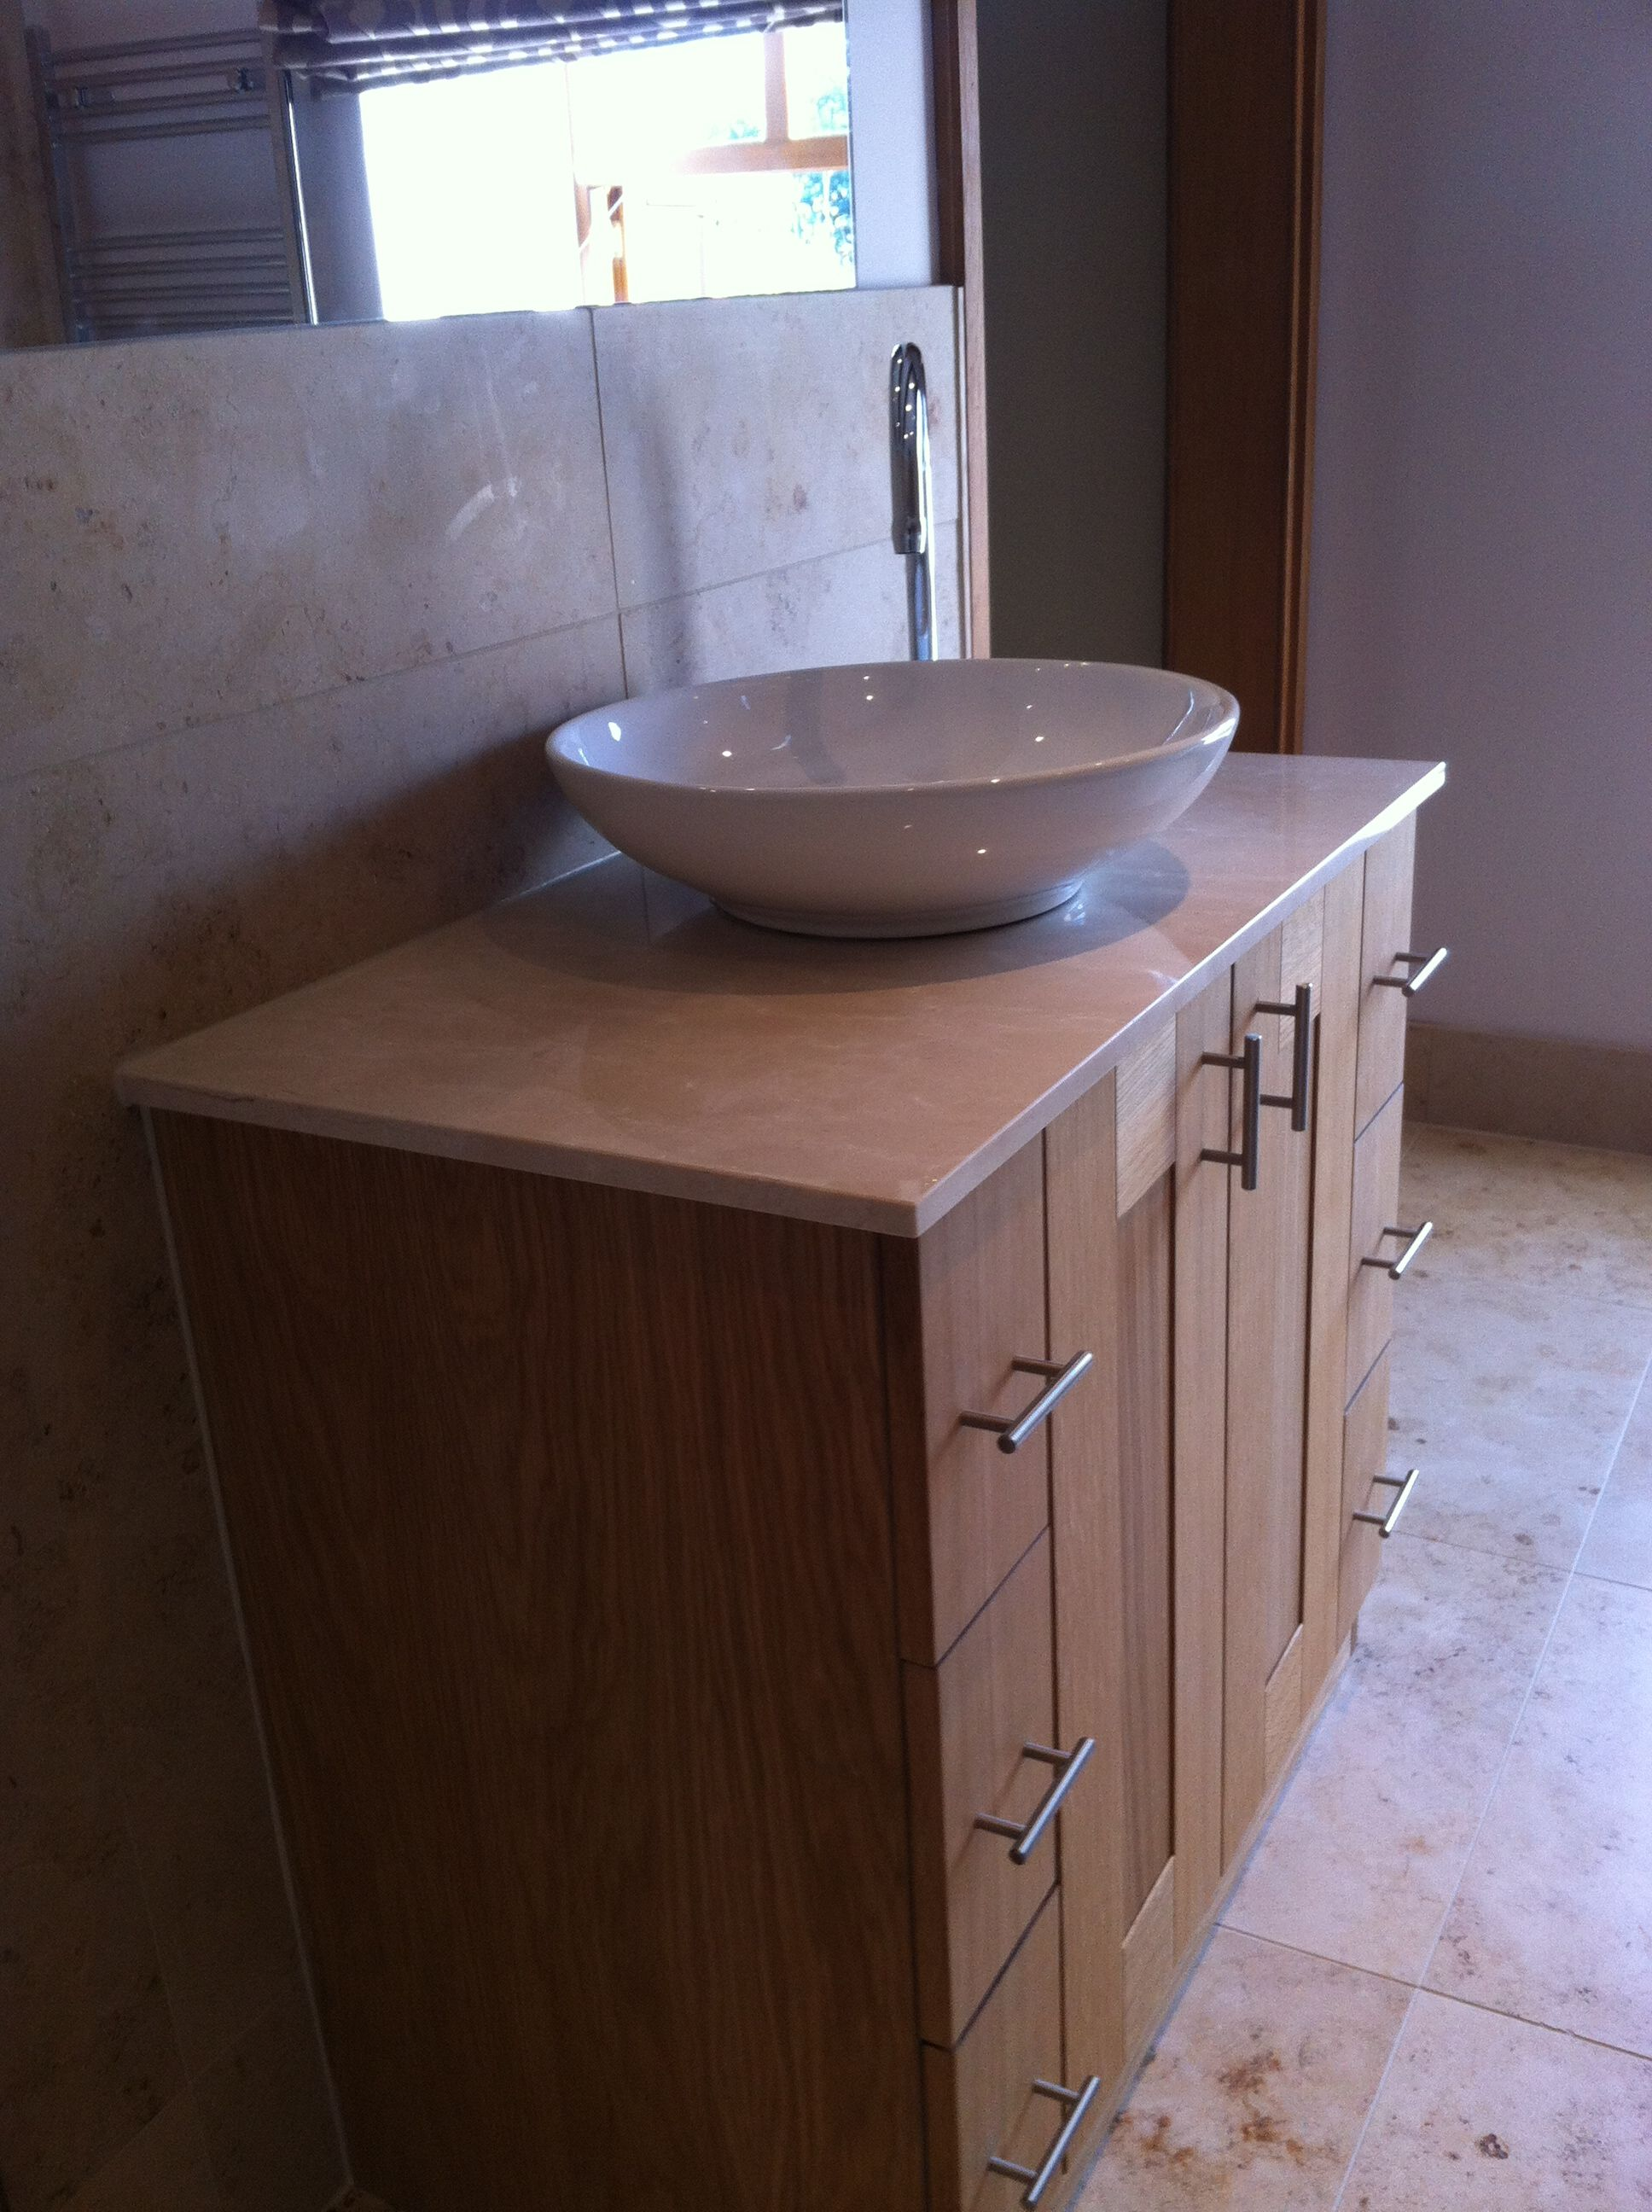 Custom Made Oak Vanity Unit With Shallow Sit On Basin Crema Marfil Marble Countertop Bathroom Designed Installed By Doug Cleghorn Bathrooms